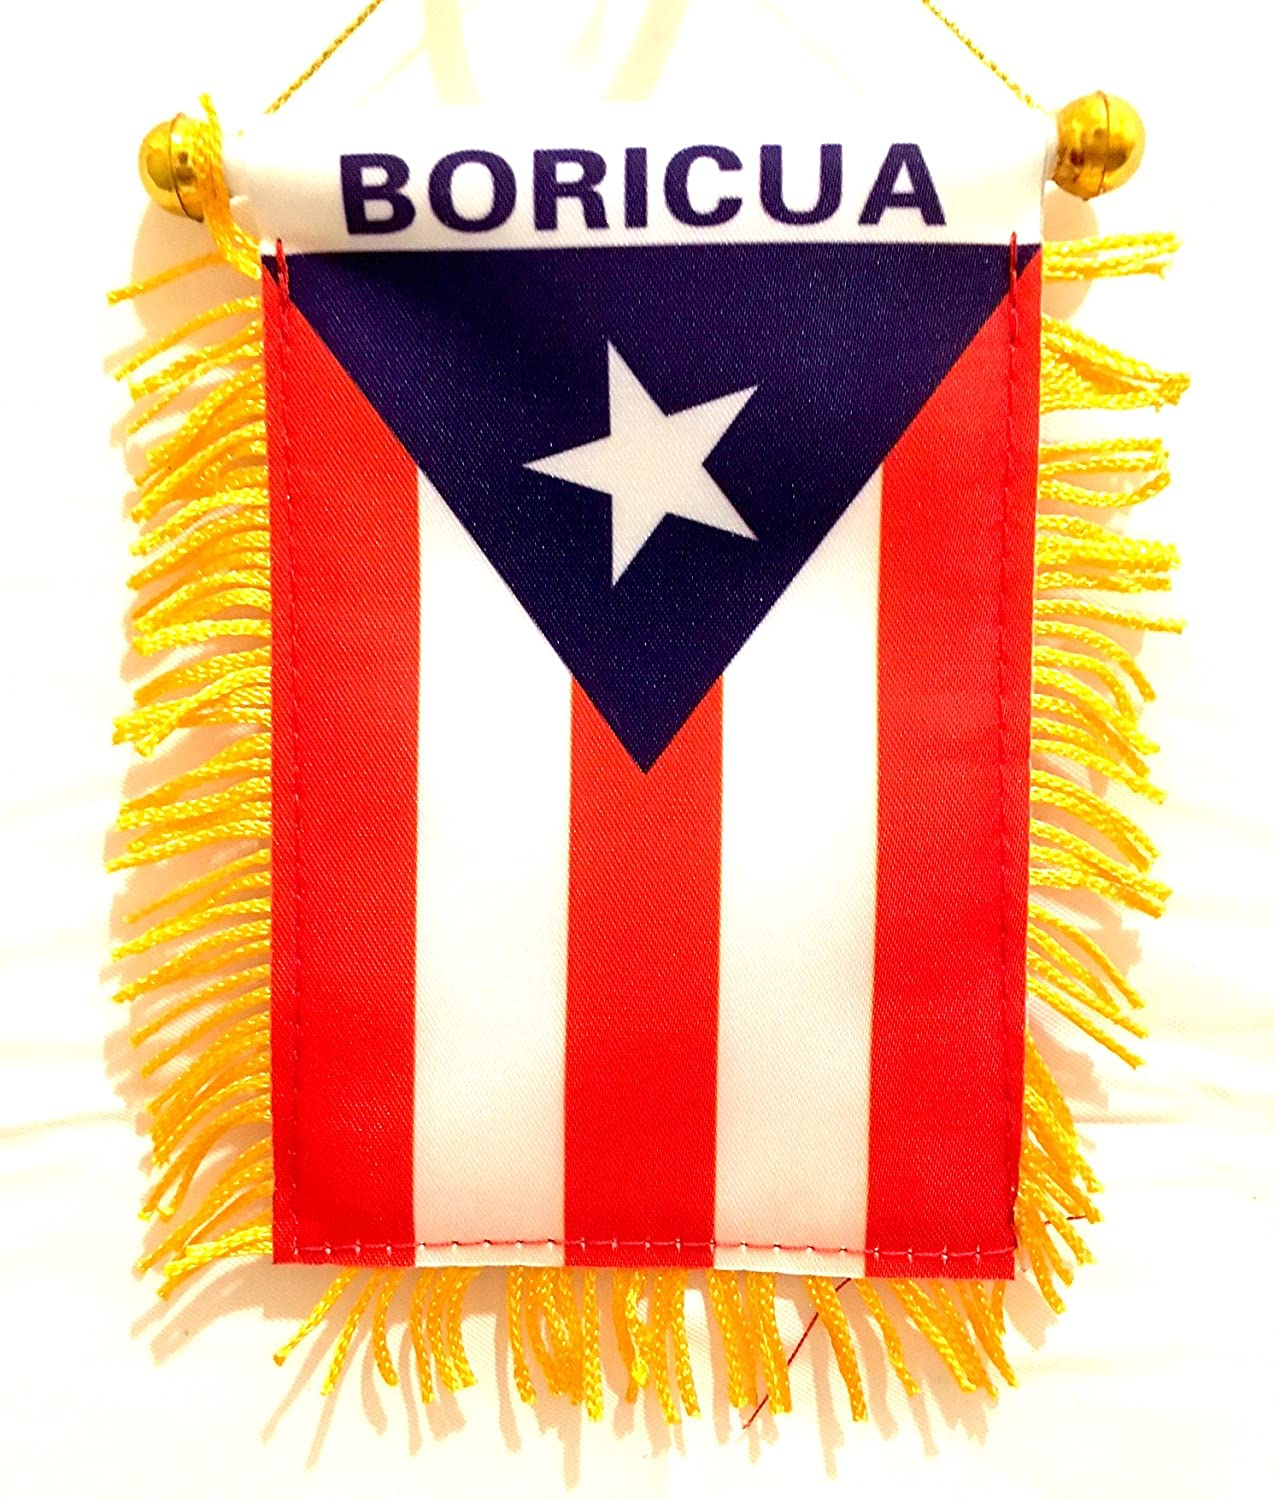 Puerto Rico Mini Banner Flag Boricua Design Limited Edition mad can studios NYC